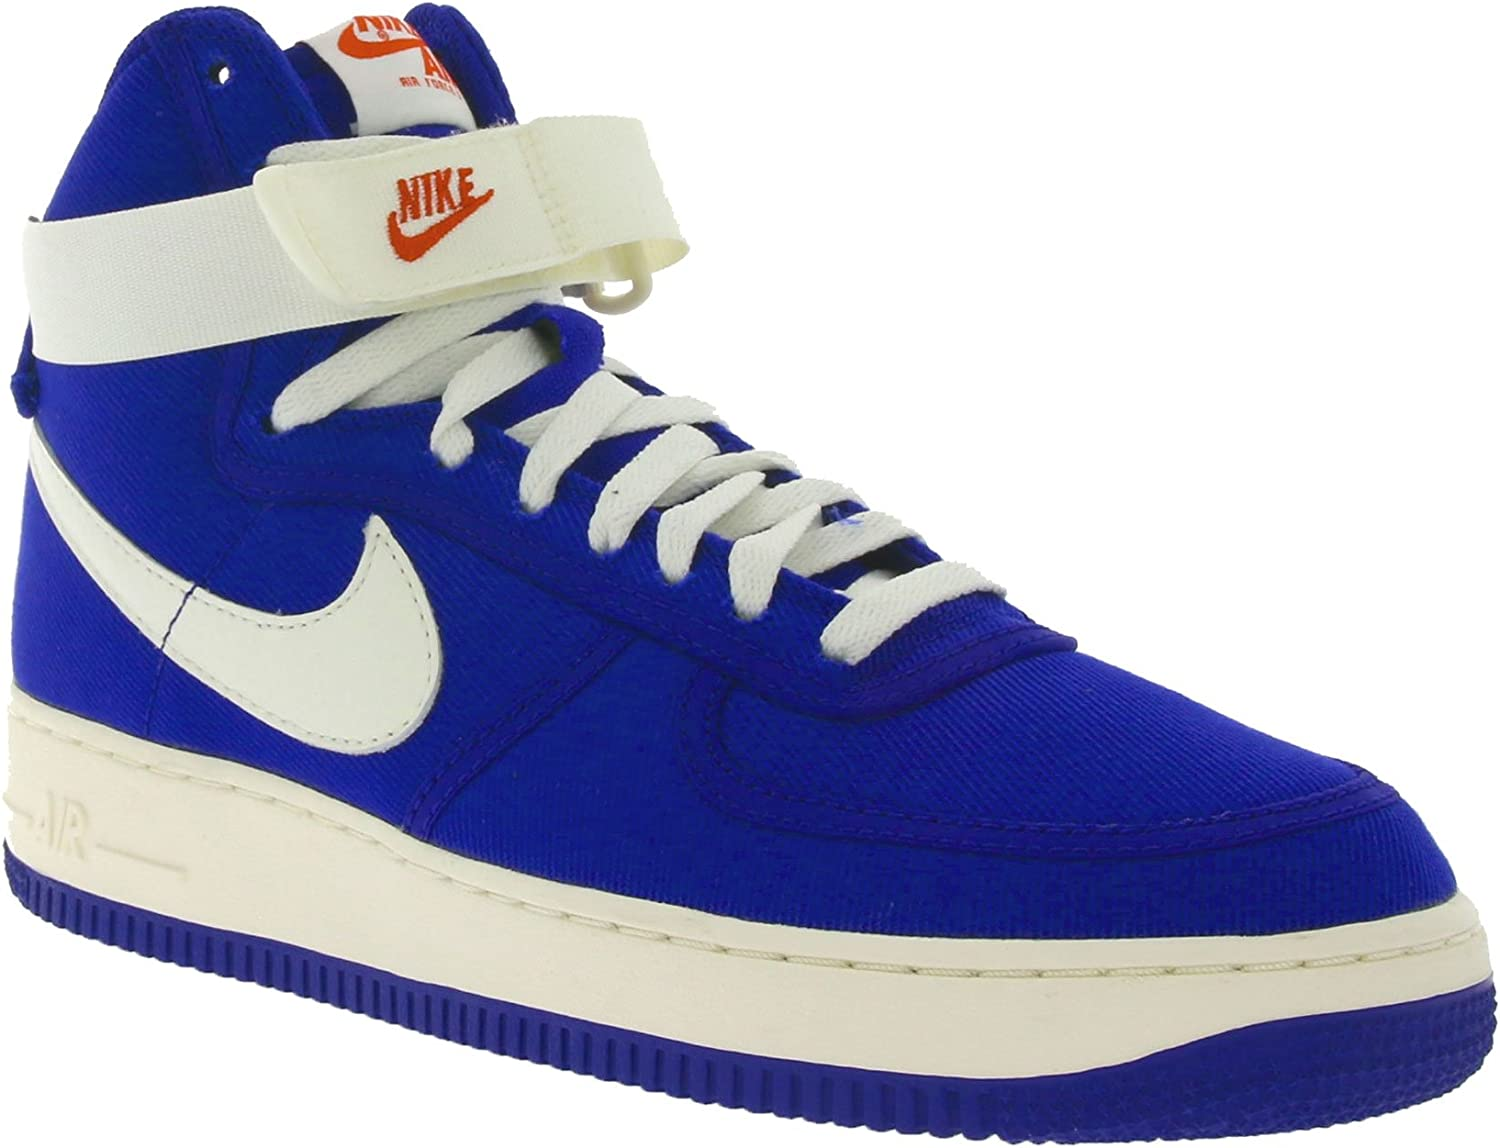 Nike Air Force 1 High Retro Mens Sneaker bluee 832747 400